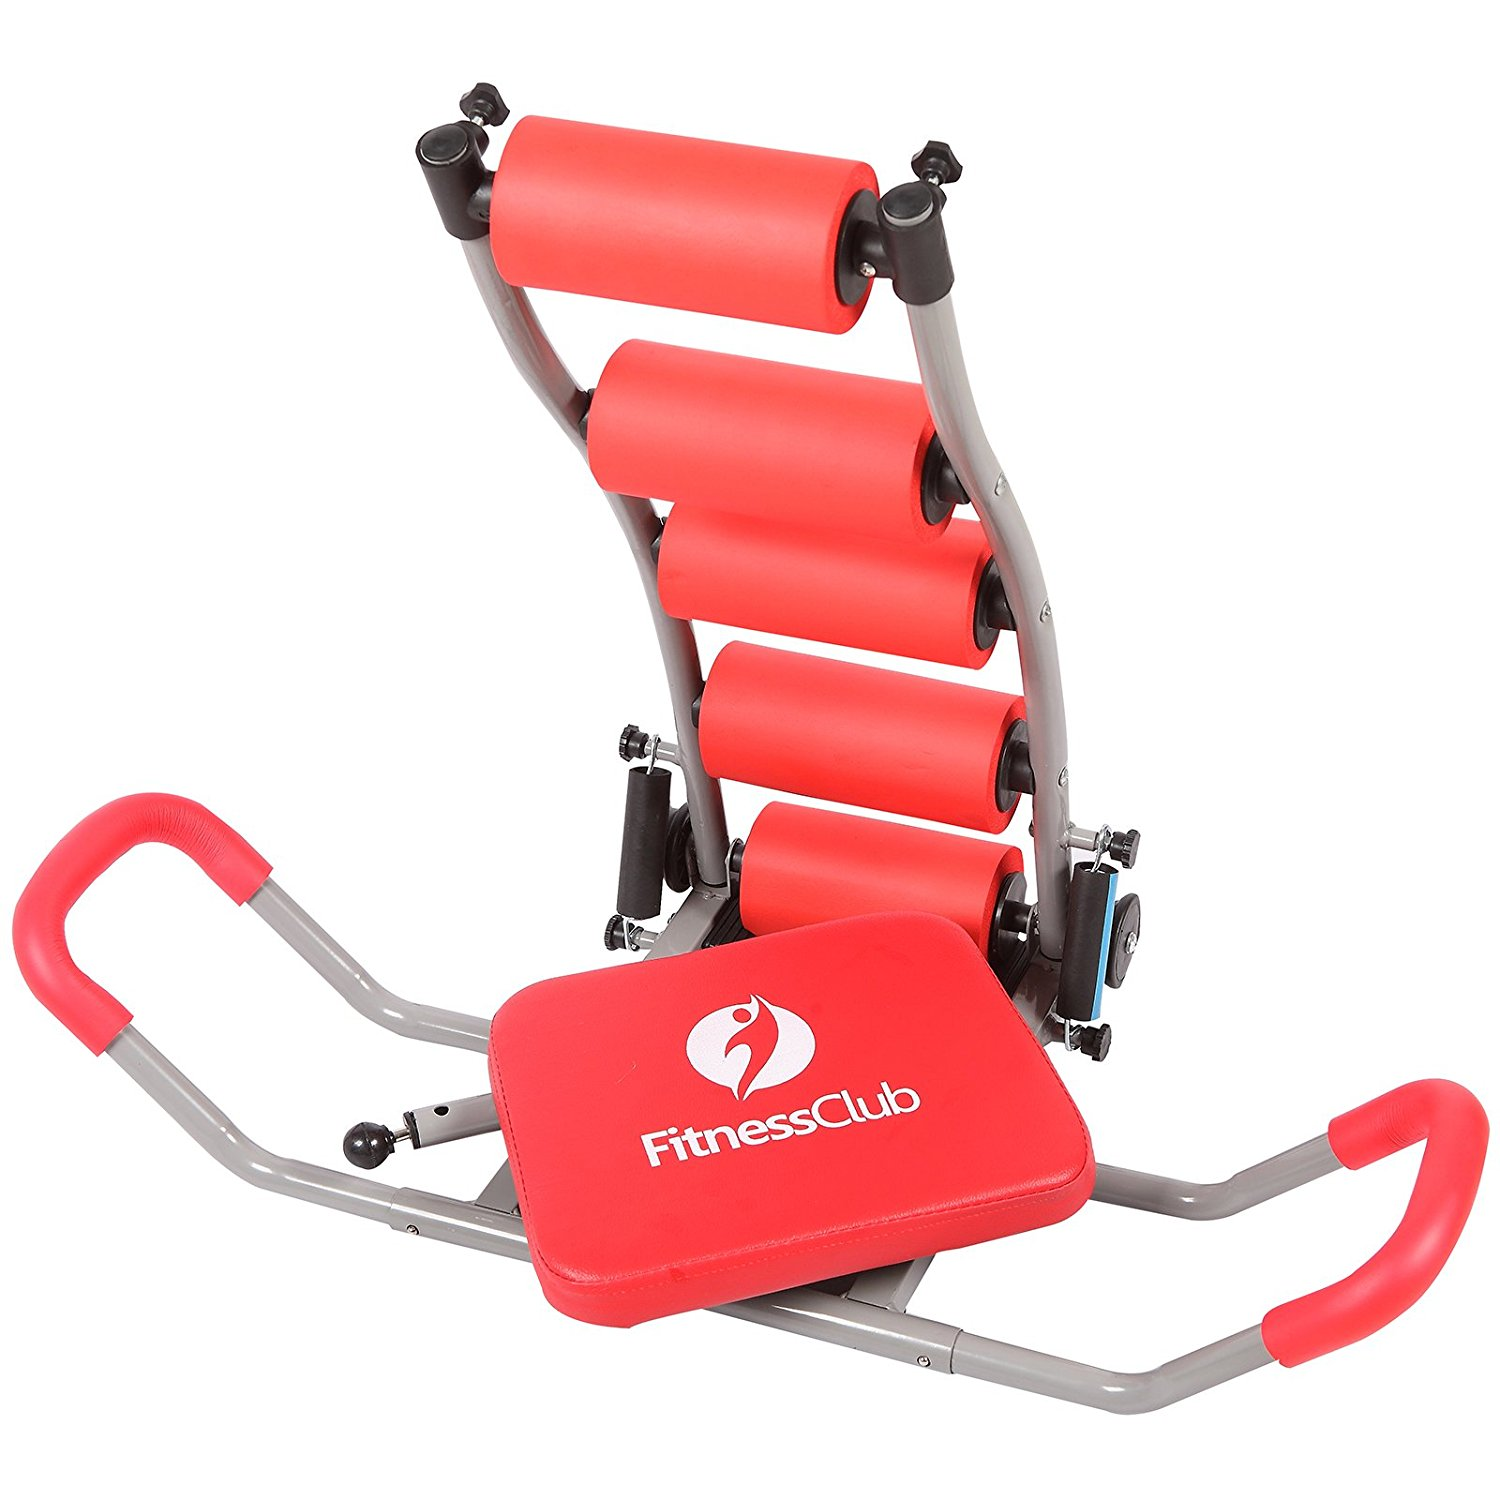 H.B.S AB Exerciser Twister Total Complete Abdominal Trainer Fitness Exercise Workout Machine